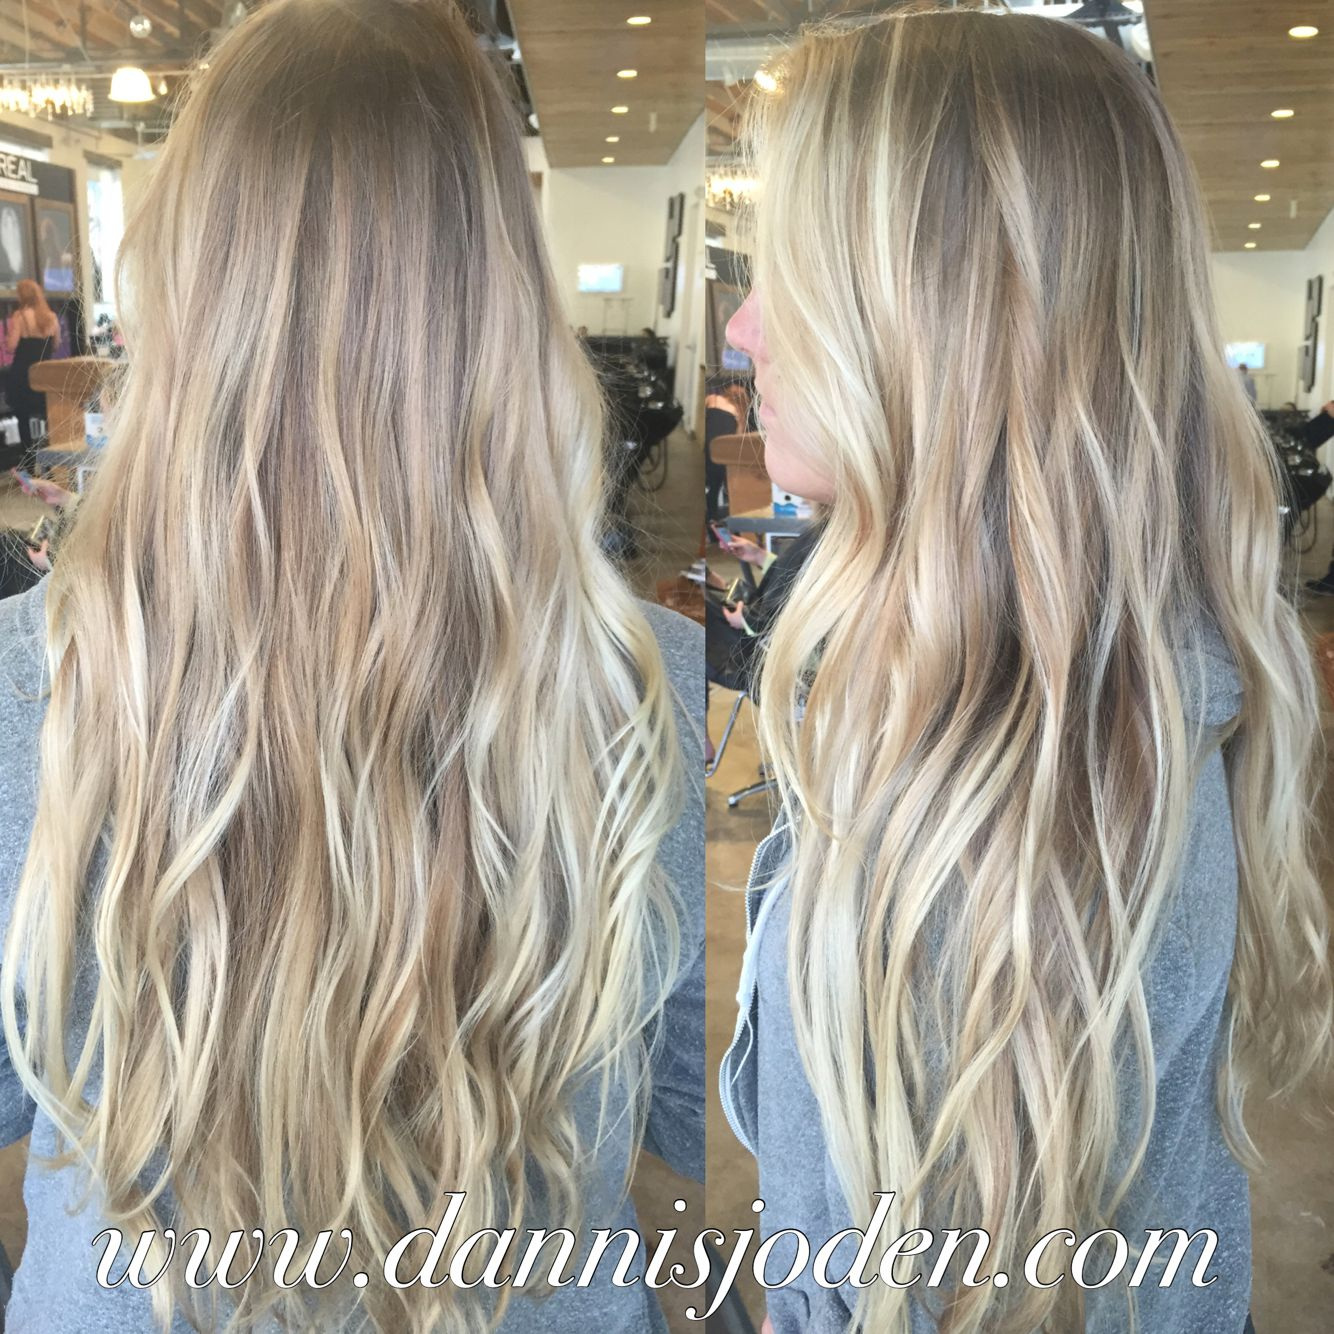 Natural blonde root melting into platinum blonde balayage hair by